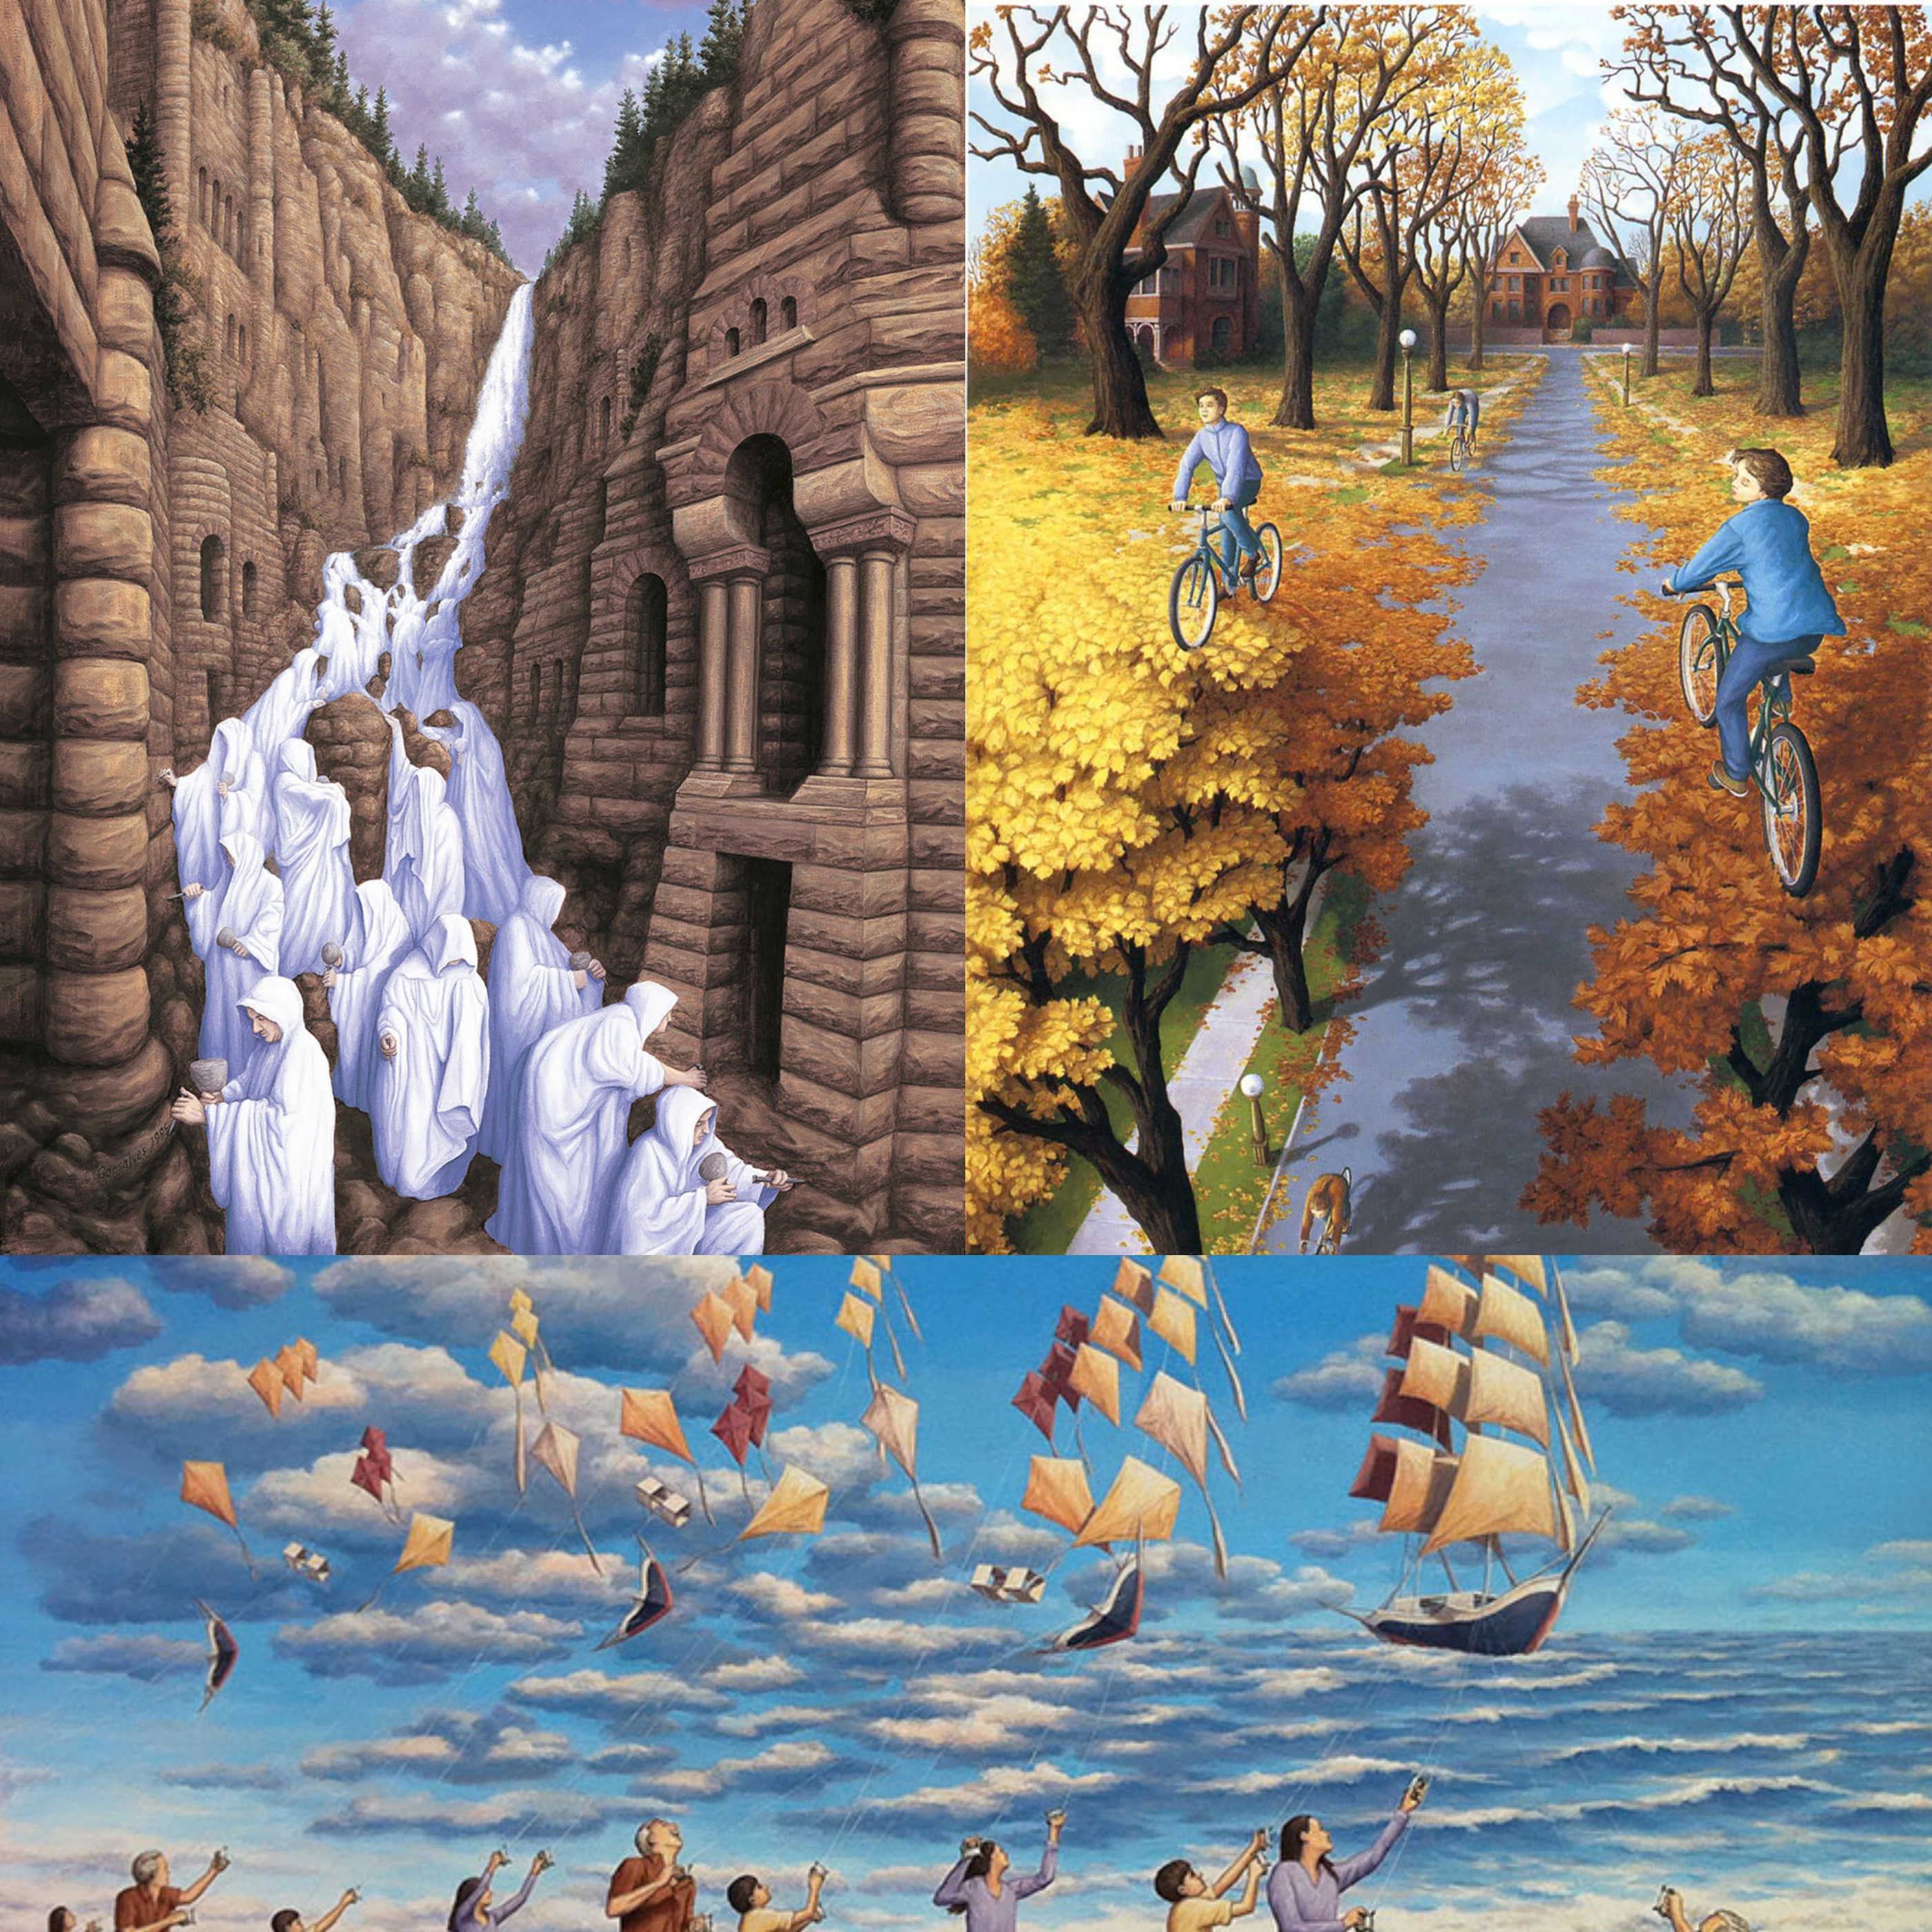 magic realism paintings by rob gonsalves 2_Fotor_Collage